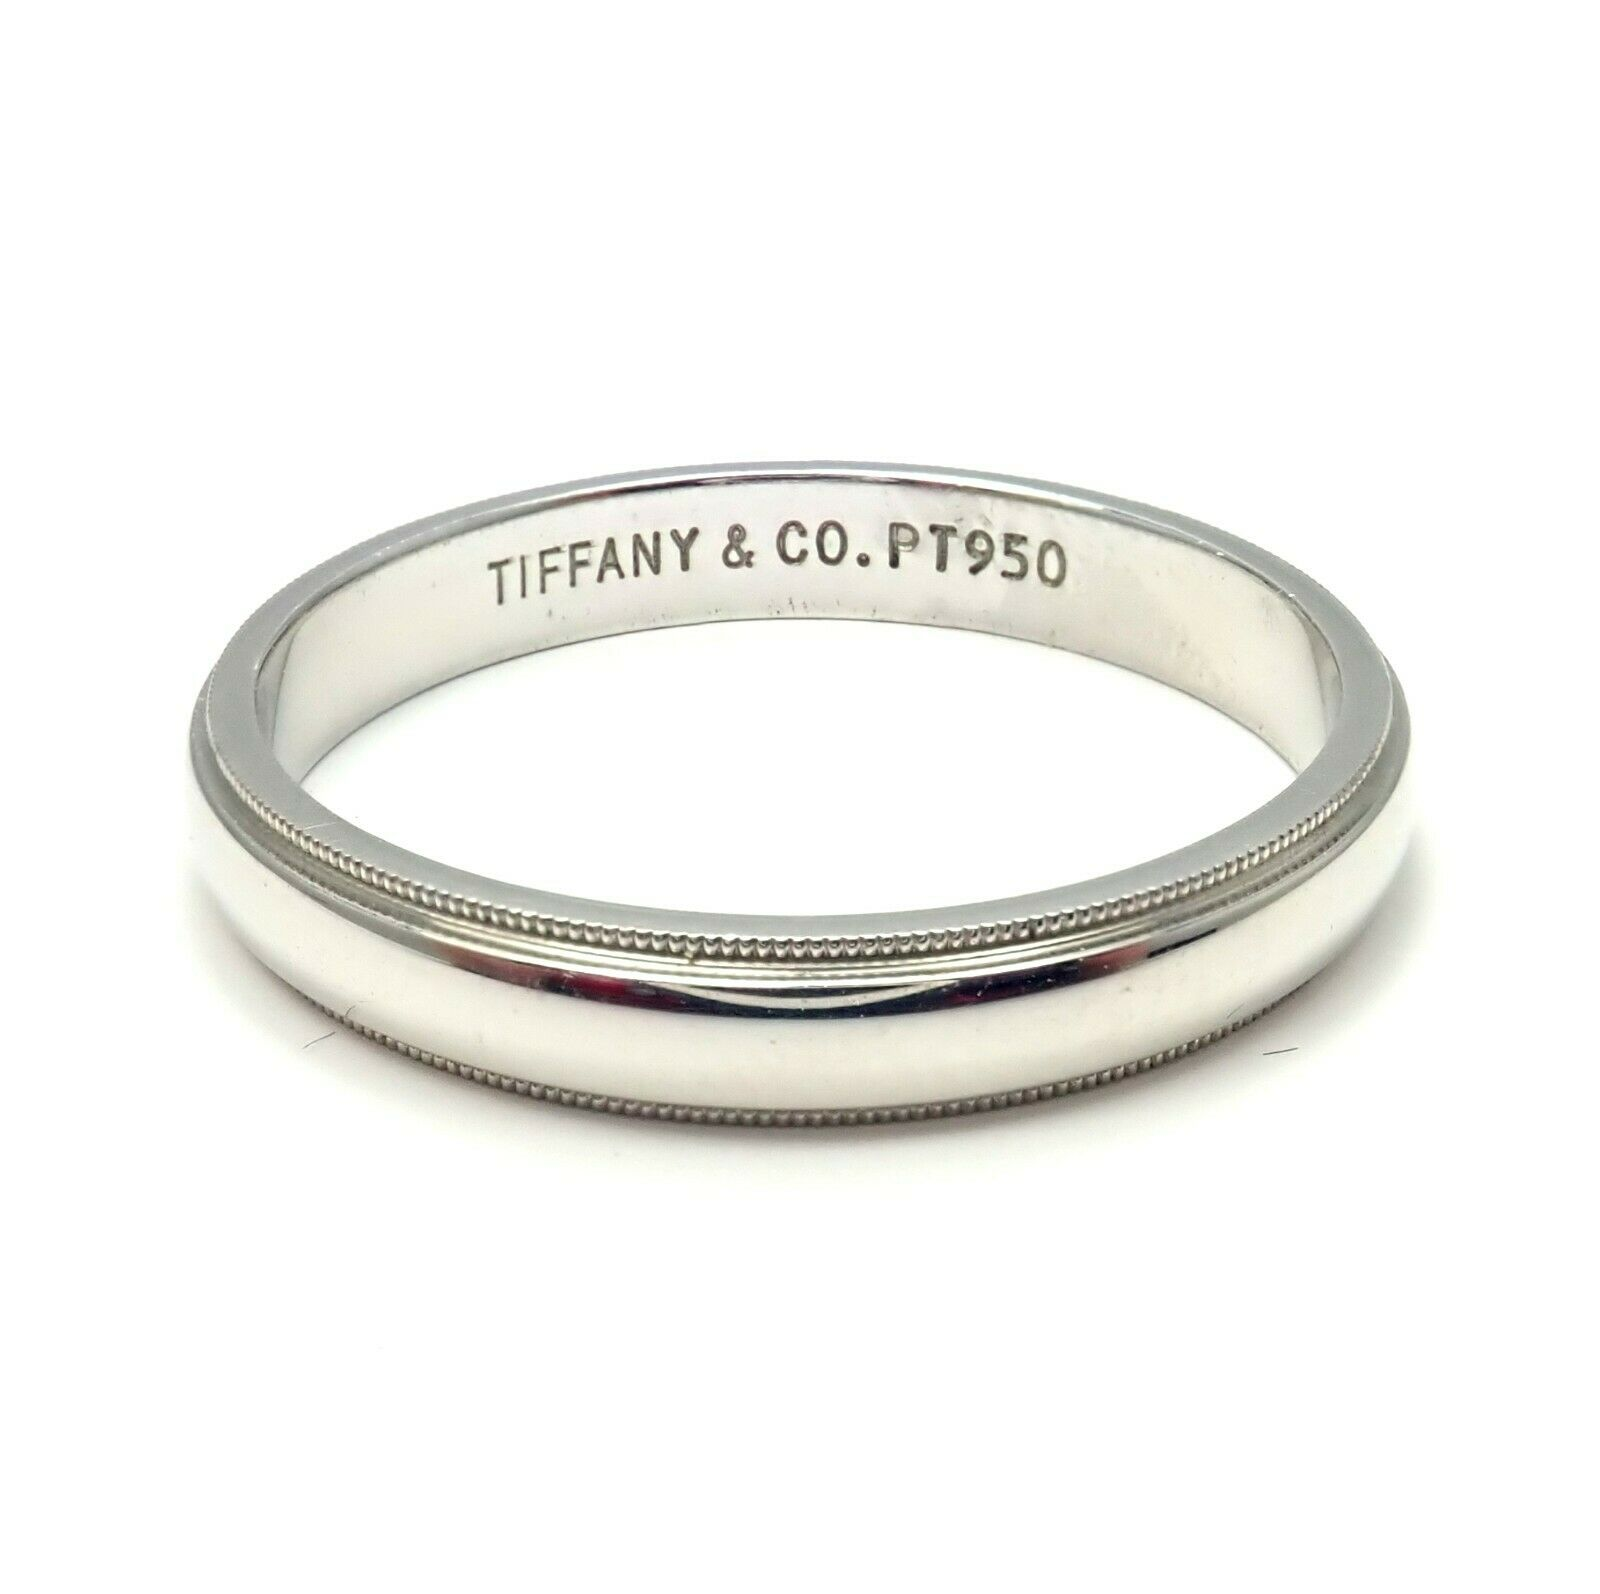 Tiffany & Co. Platinum 4mm Mens Wedding Band Ring Size 14.5